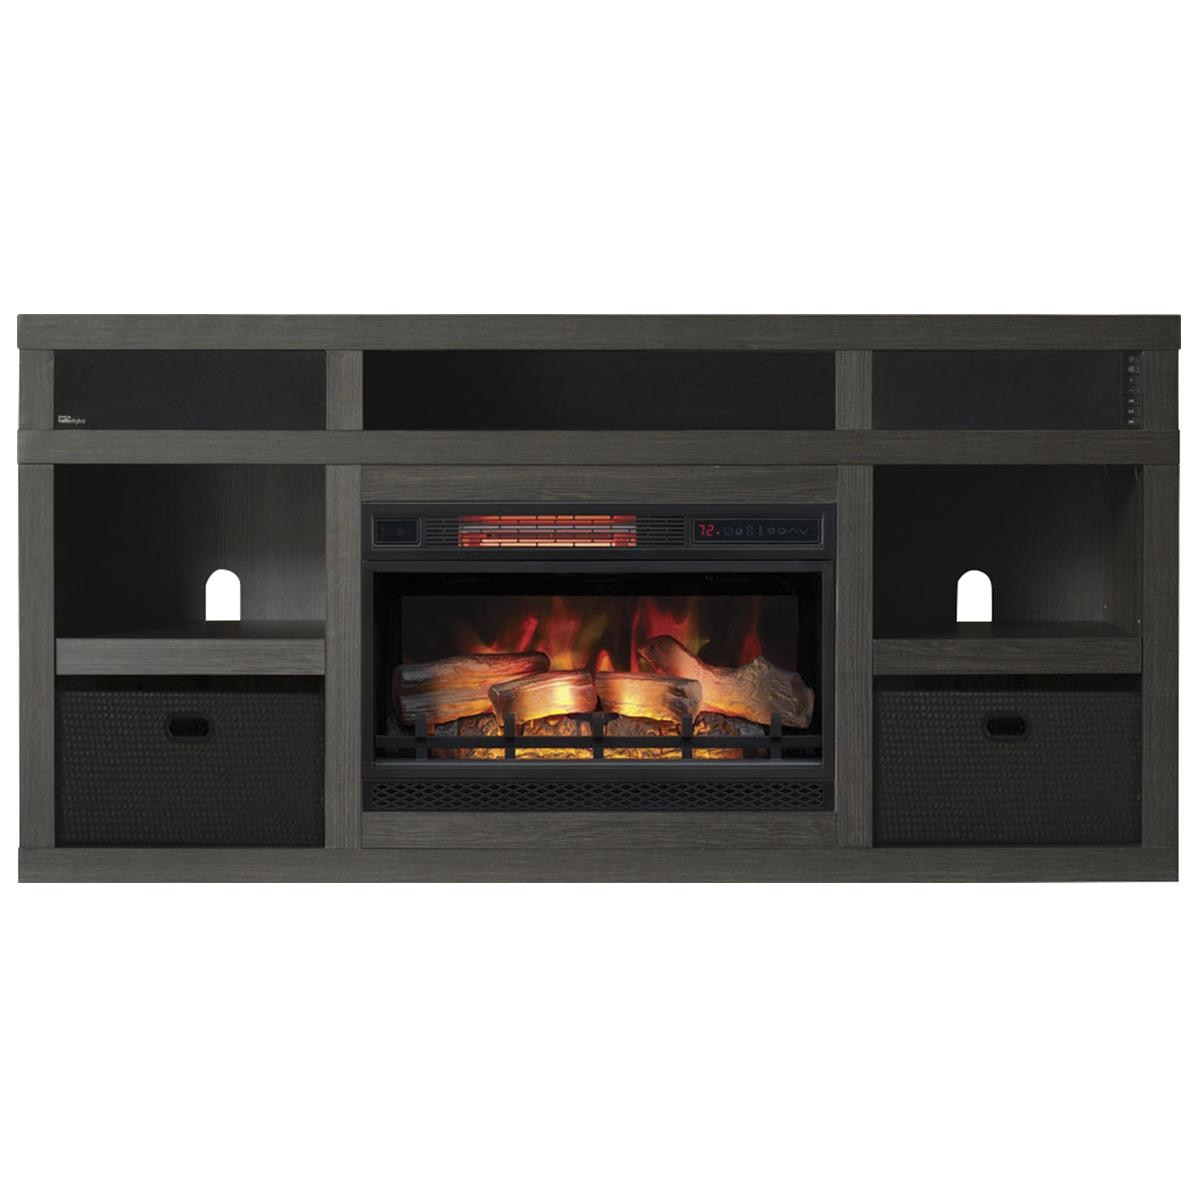 Fireplace Des Moines Unique Fabio Flames Greatlin 3 Piece Fireplace Entertainment Wall